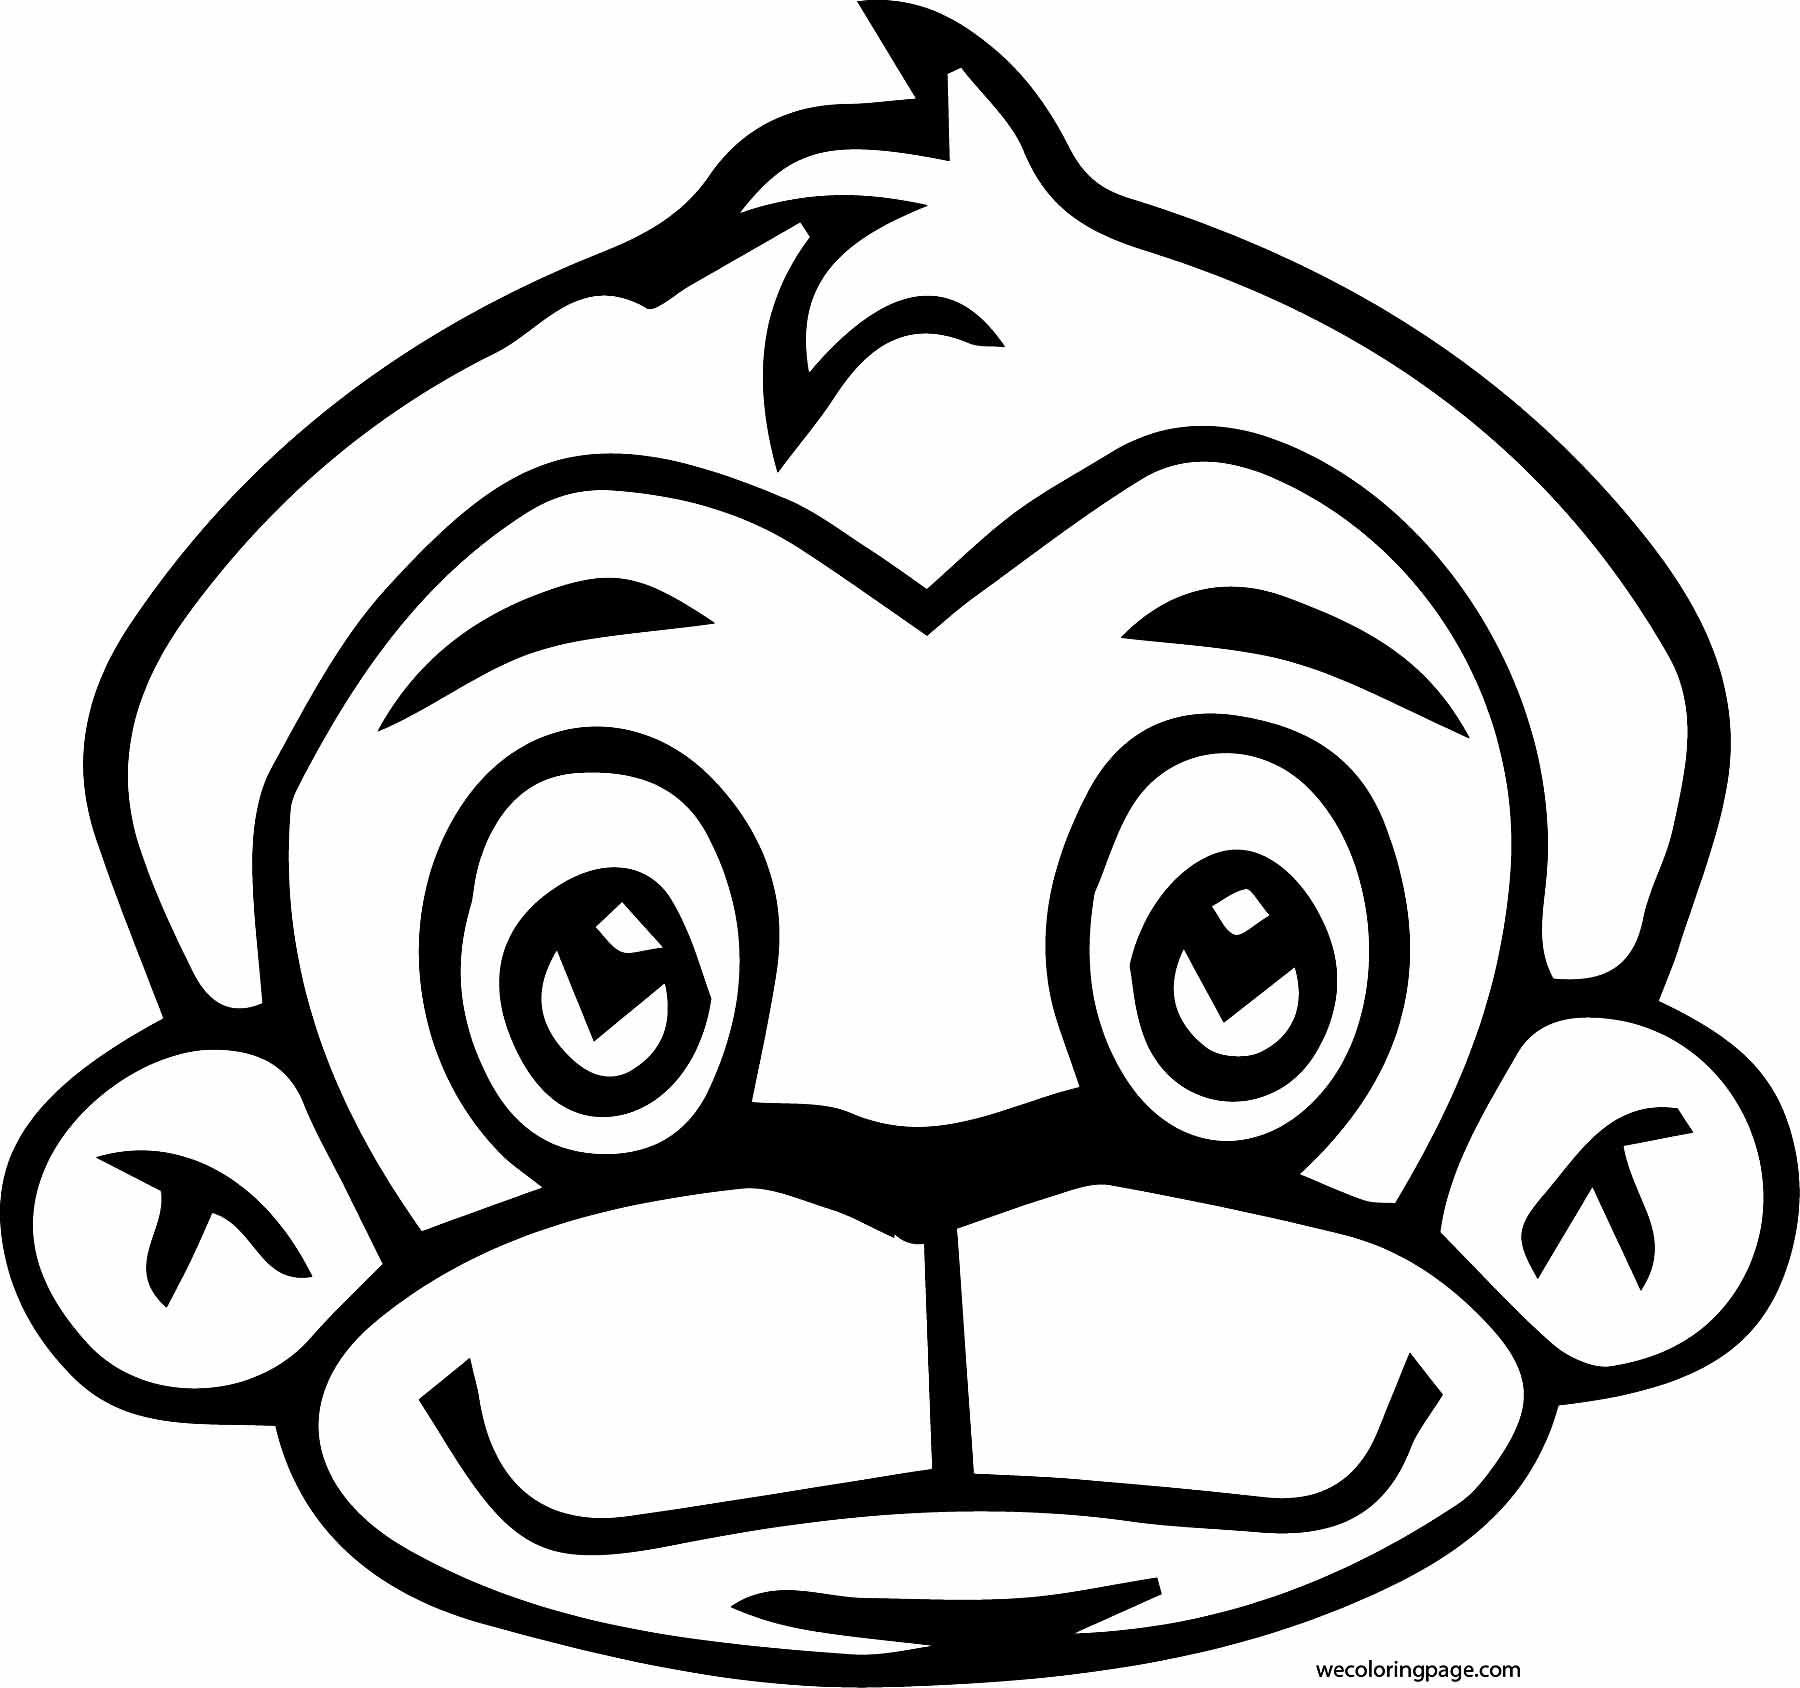 monkey face coloring pages - chhota bheem monkey face coloring page